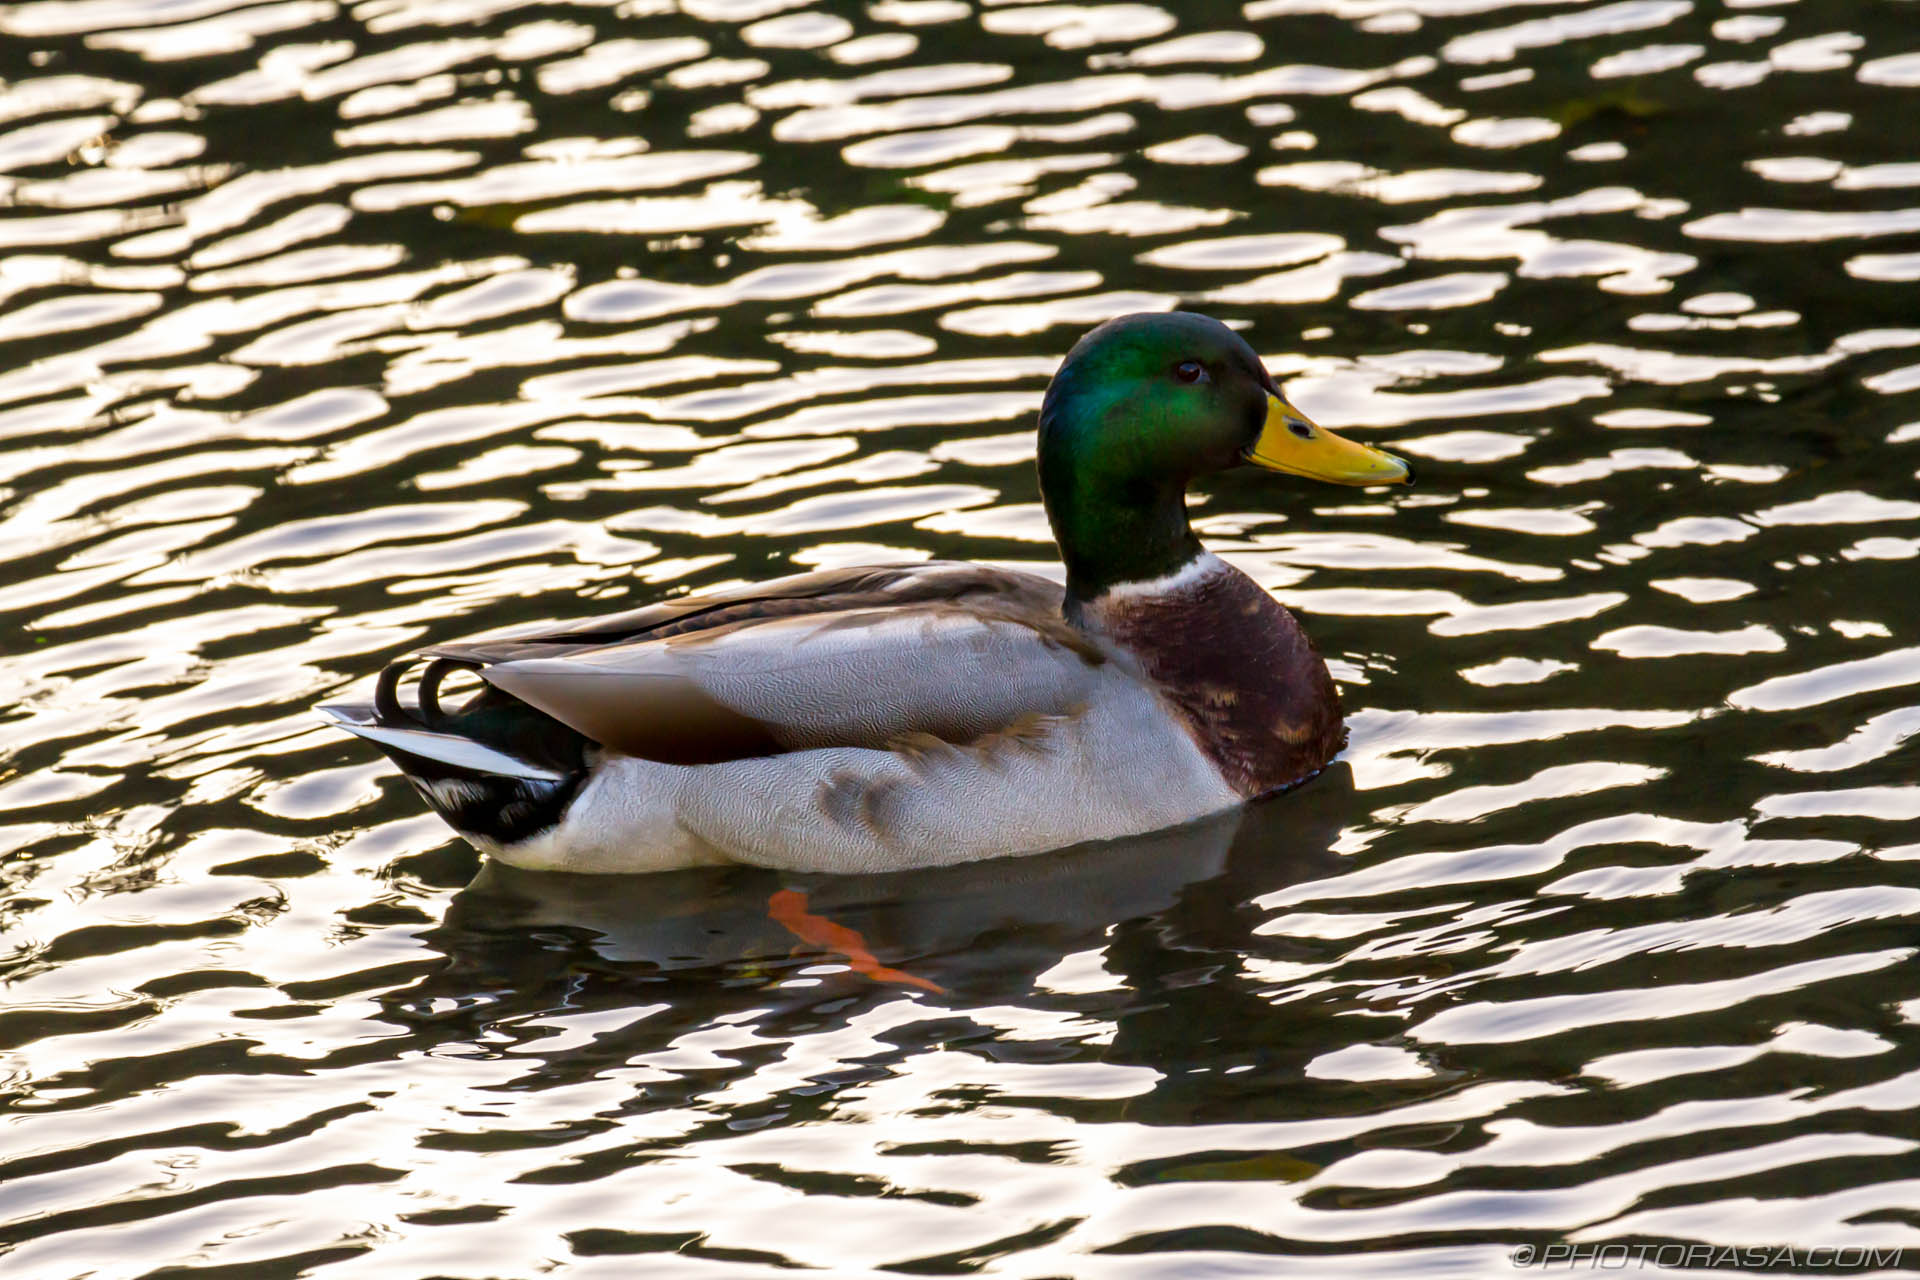 http://photorasa.com/mallard-ducks/duck-on-reflected-water/